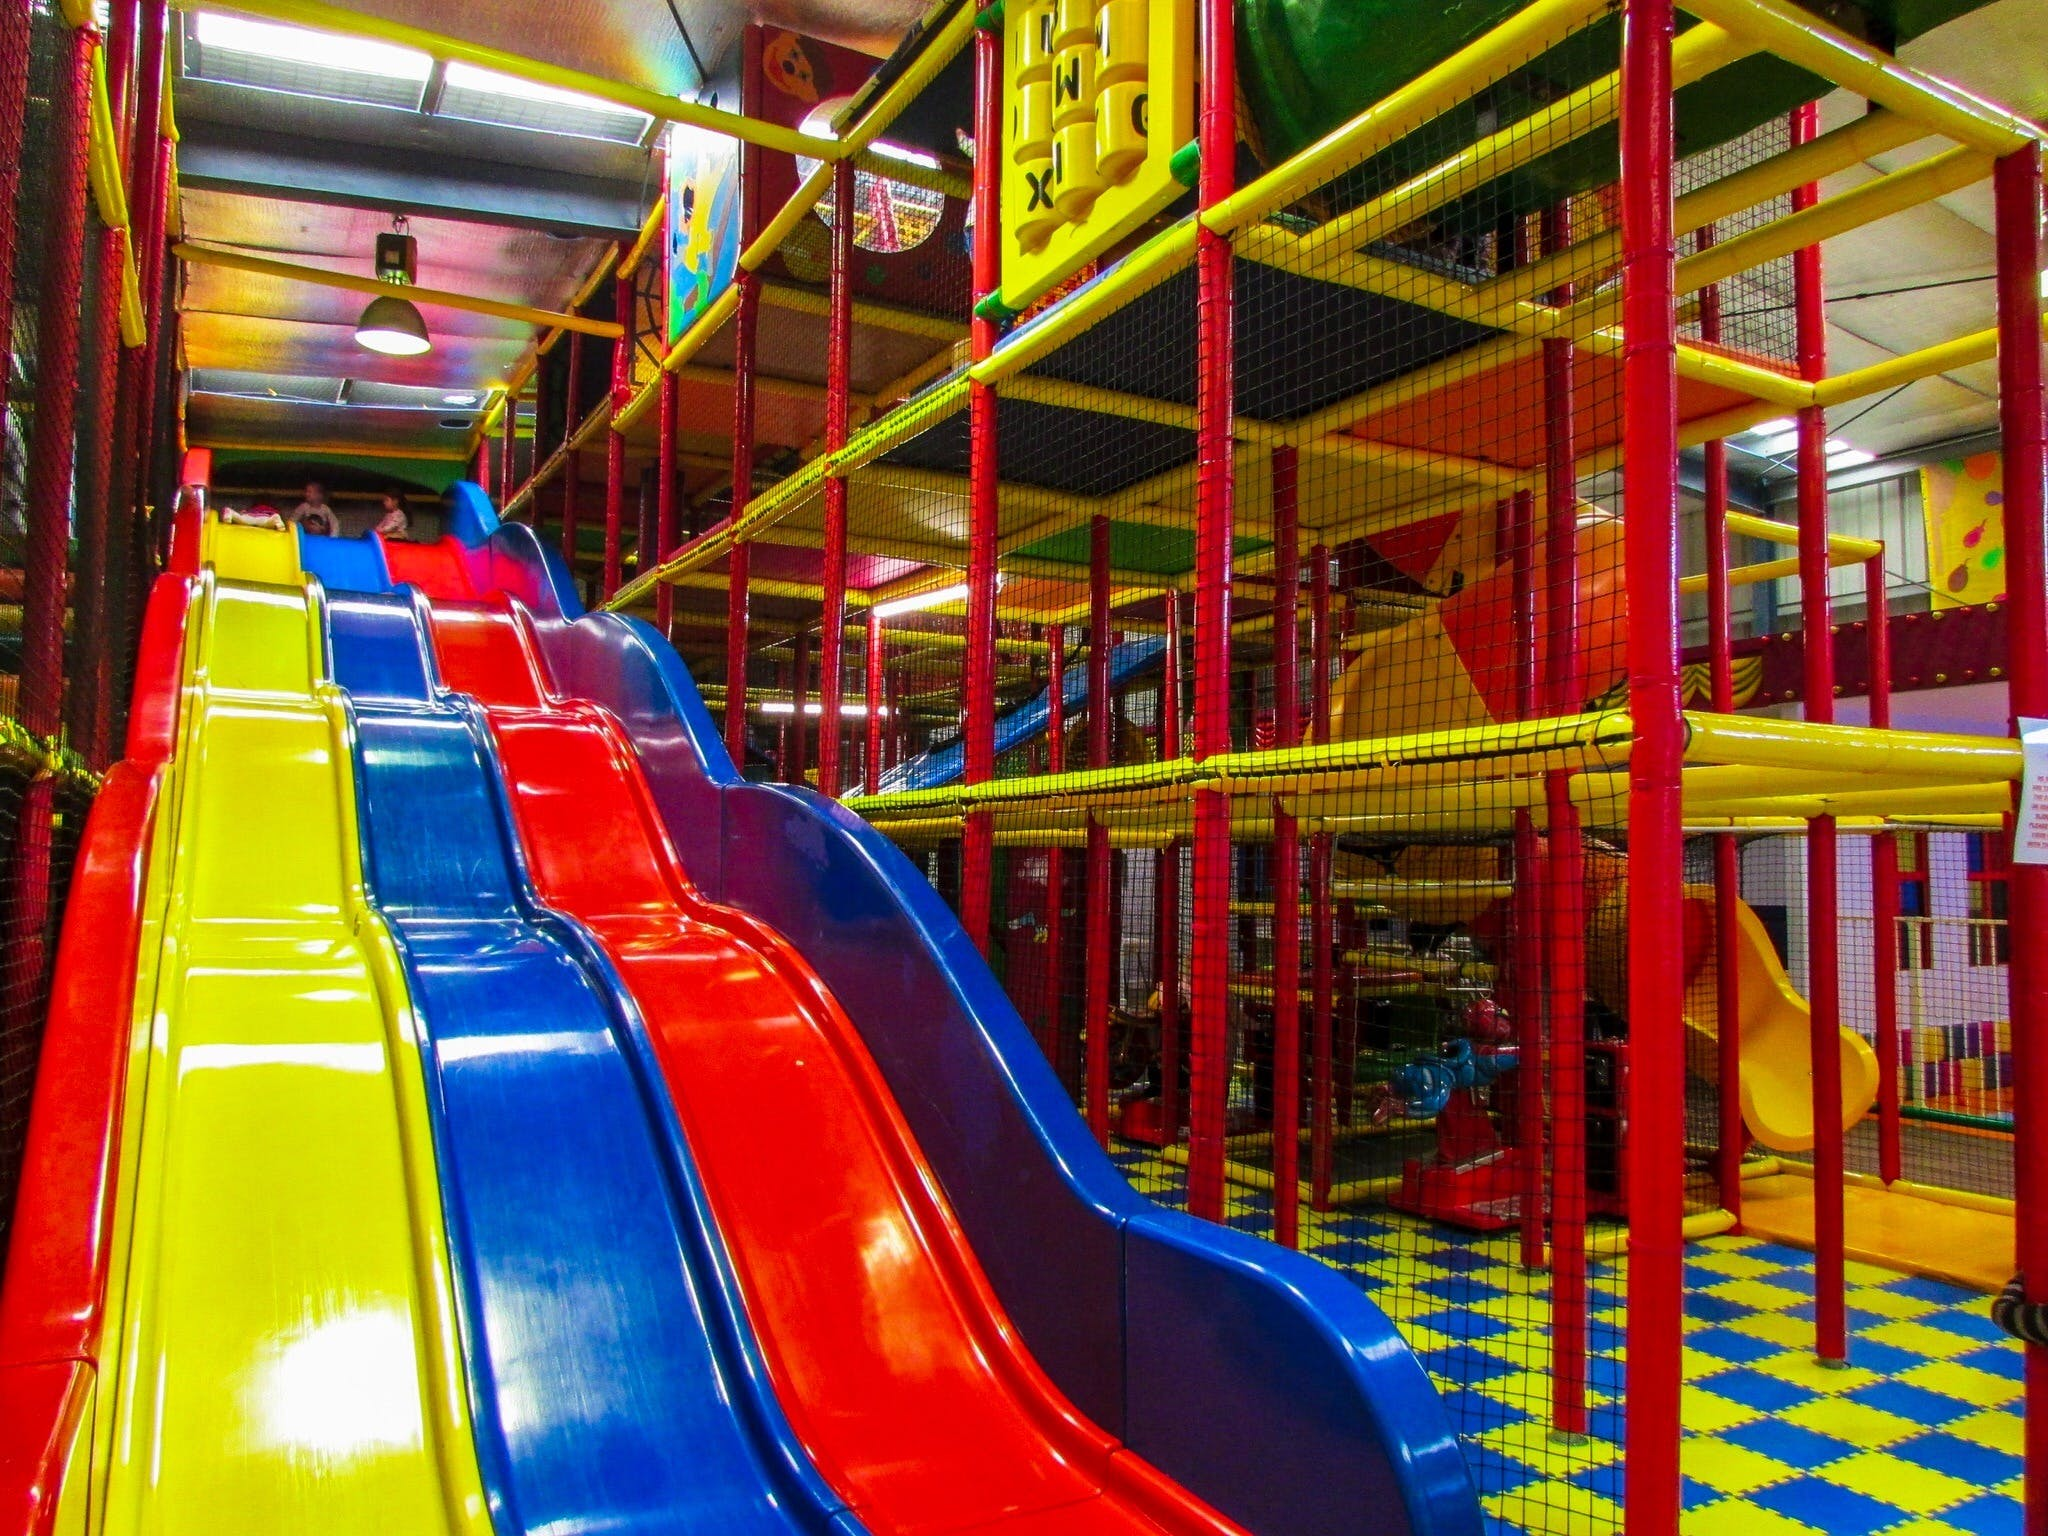 Kidz Shed Indoor Play Centre and Cafe - Accommodation Brisbane